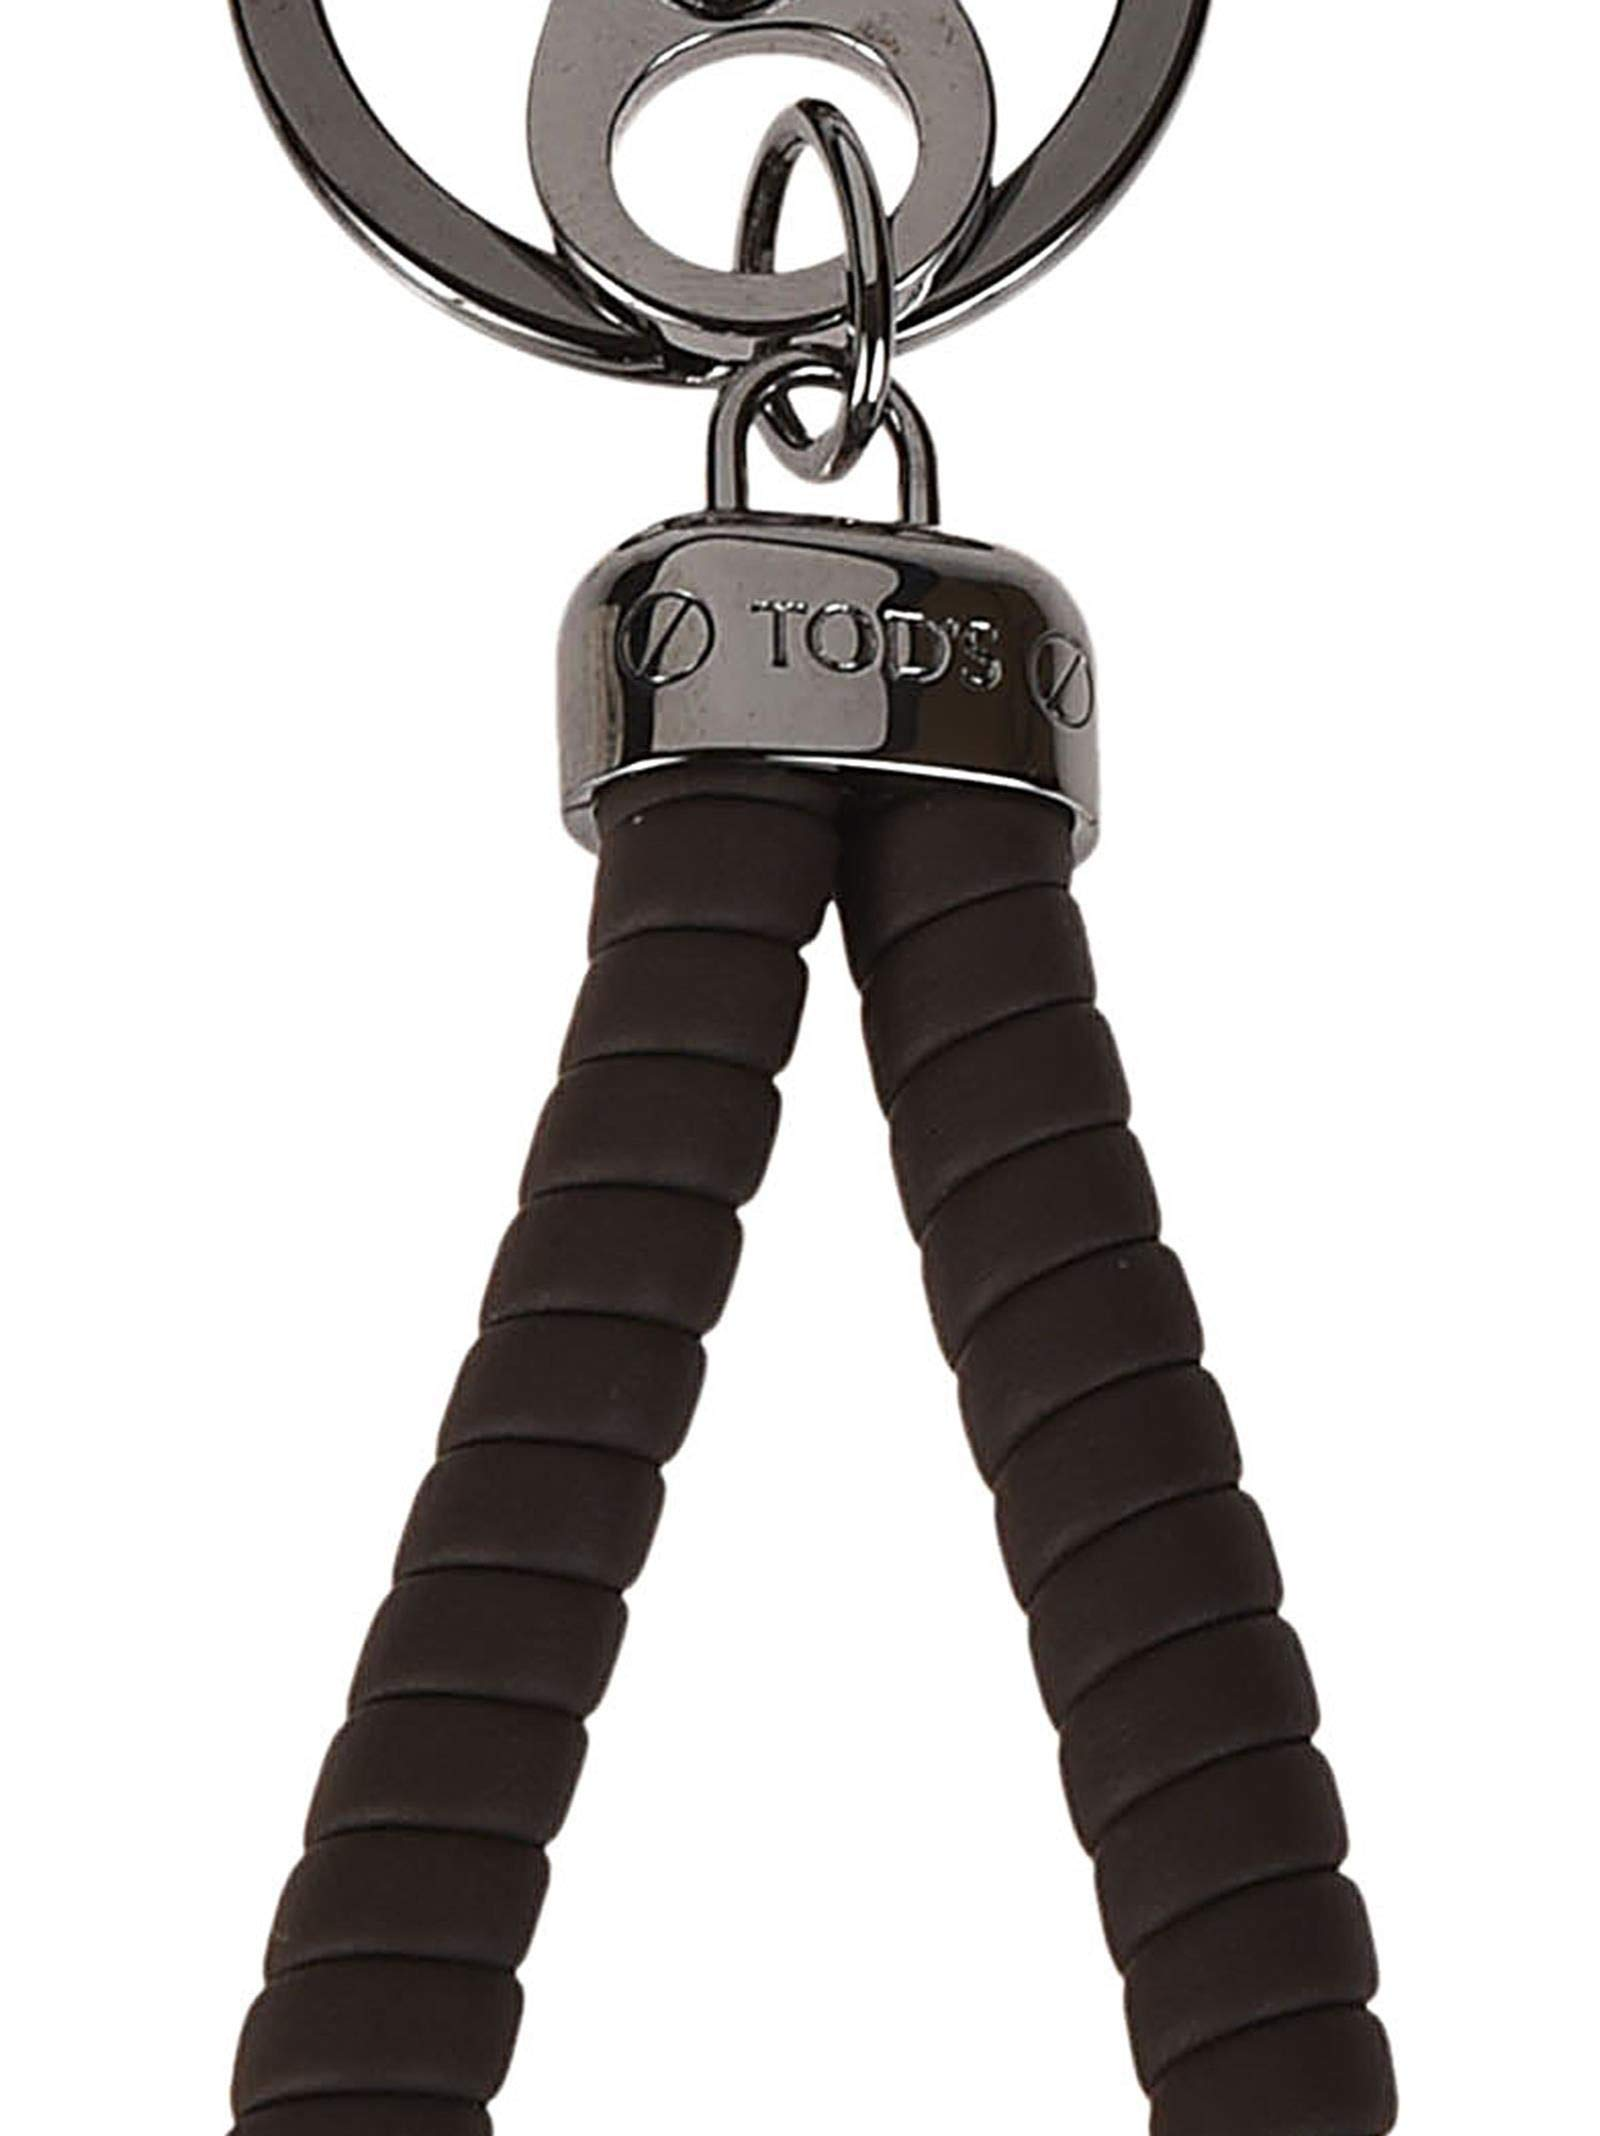 Tod's Men's Xambrvg0100flrs800 Brown Leather Key Chain by Tod's (Image #2)